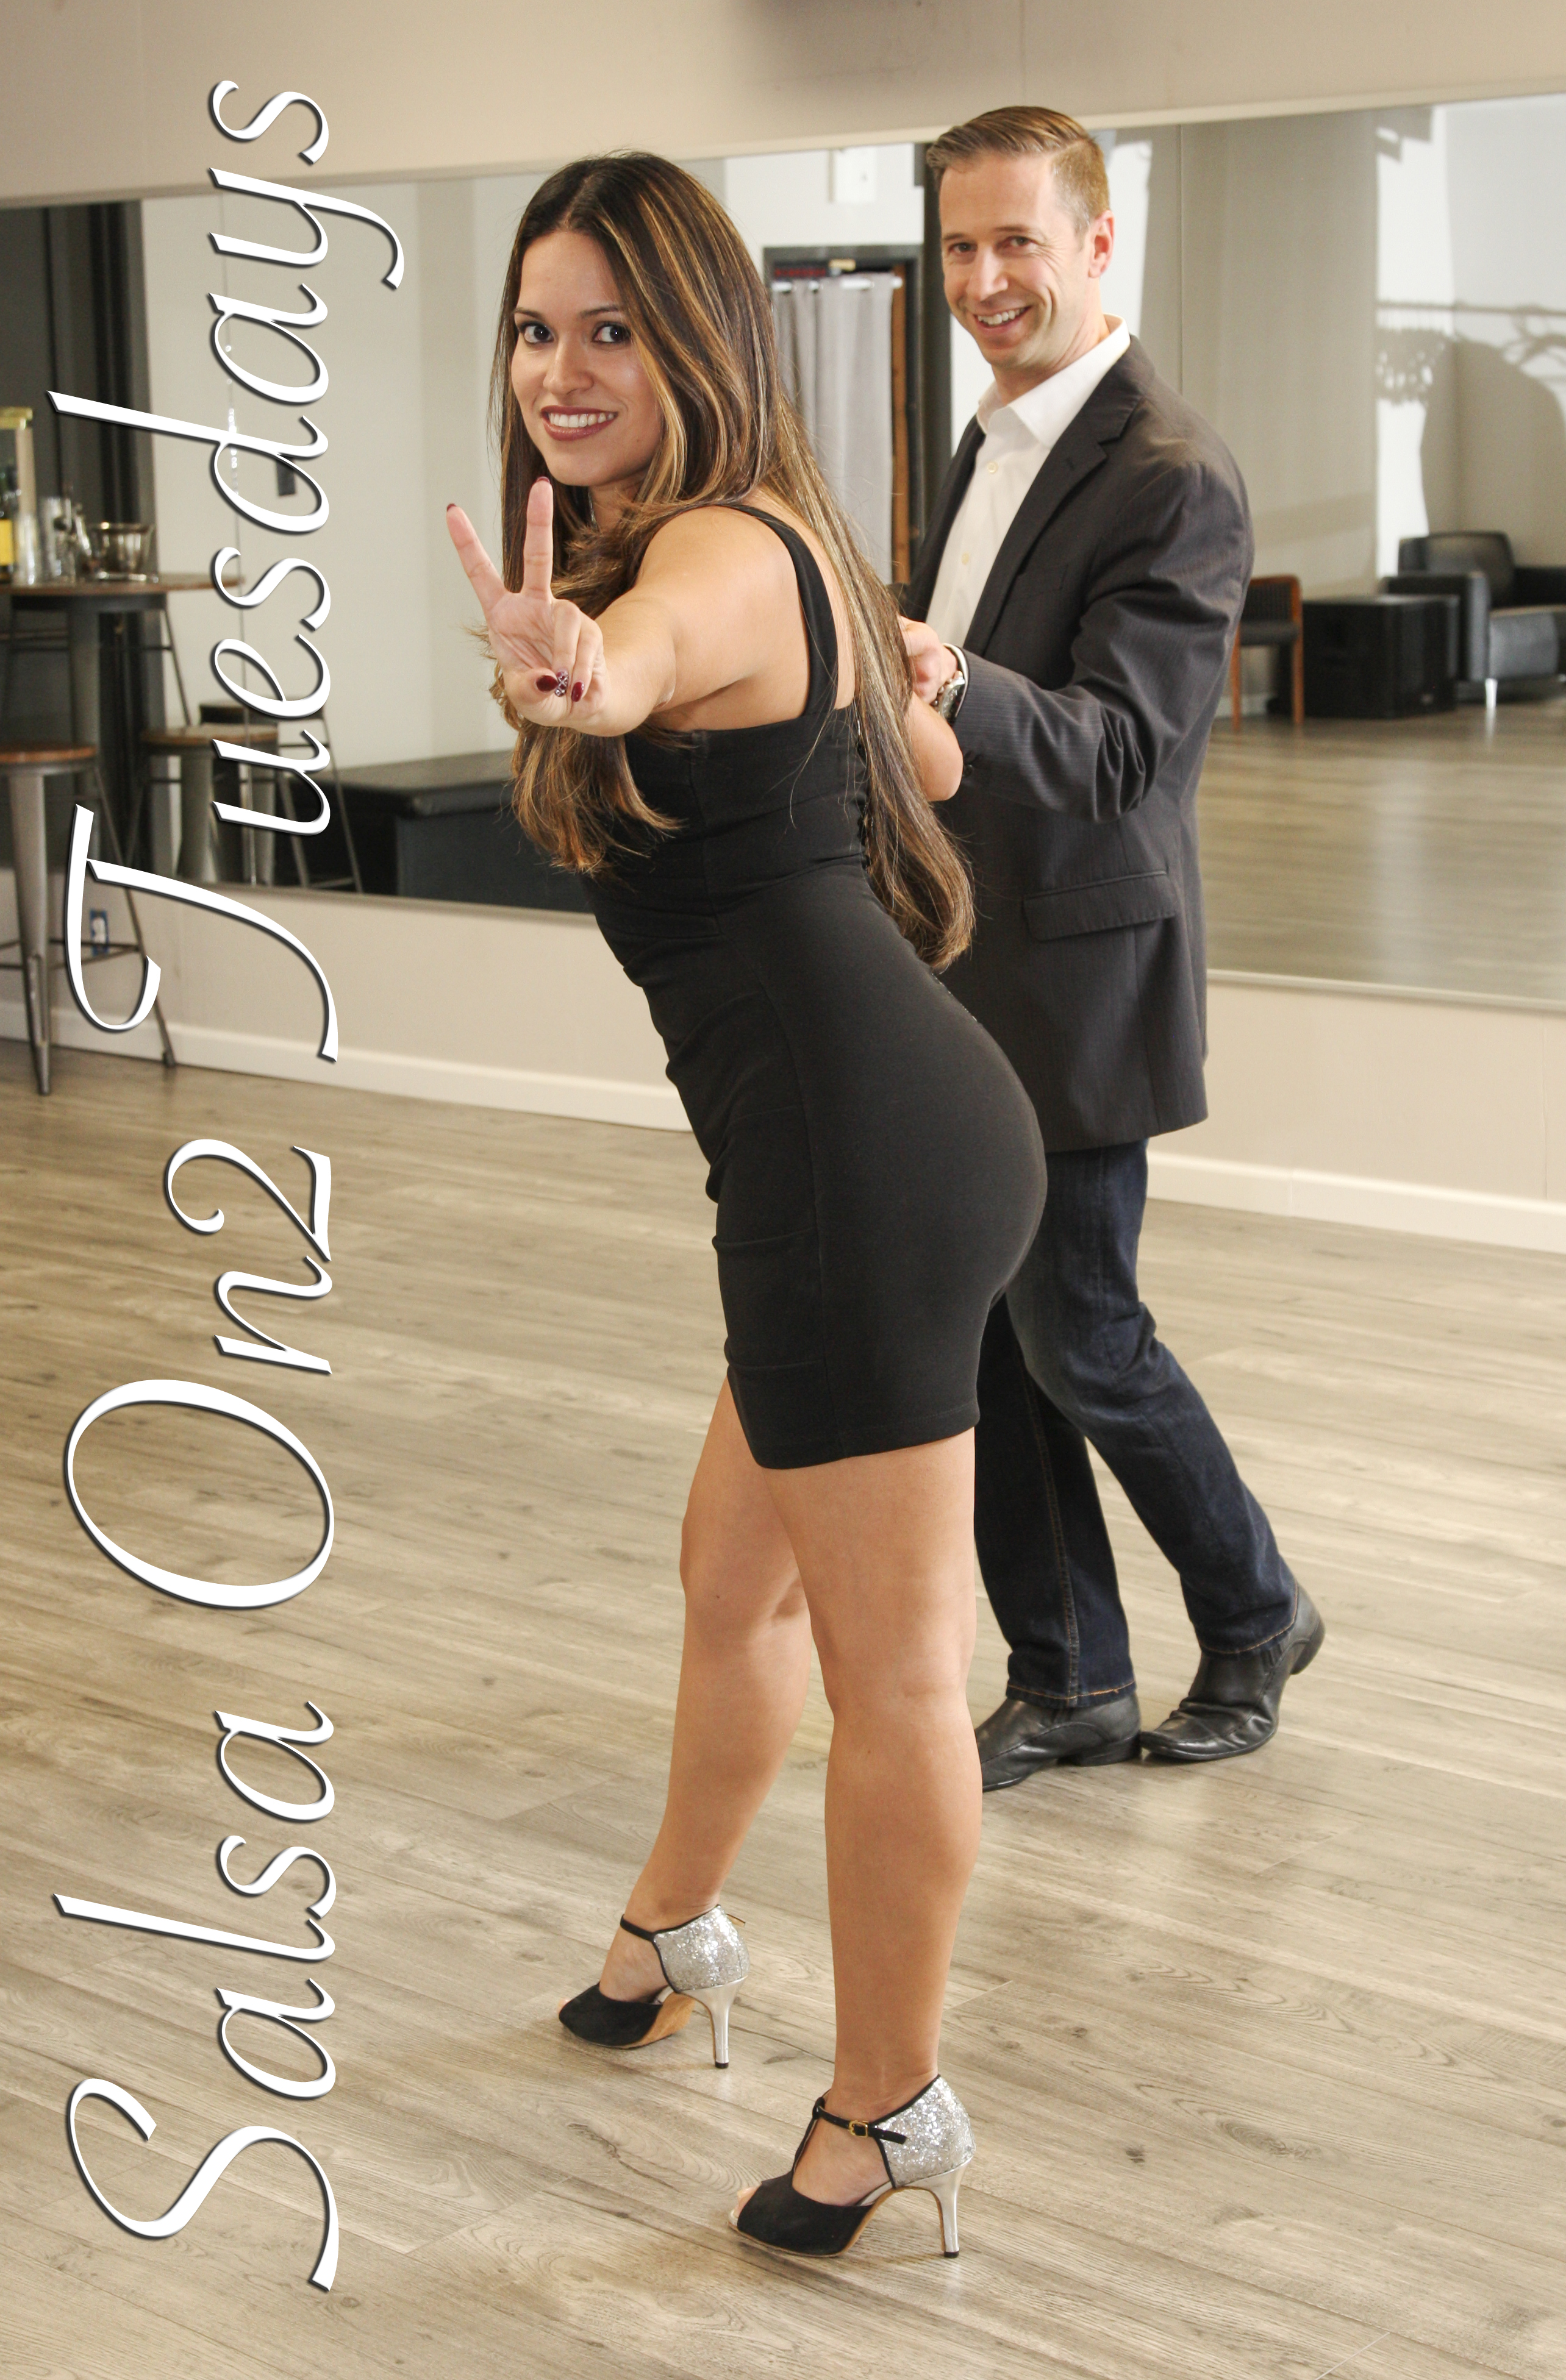 free, salsa, class, lesson, group, private, studio, school, learn, dance, teacher, instructor, nj, new, jersey, bergen, essex, union, county, counties, lyndhurst, kearny, north, arlington, rutherfrod, belleville, clifton, newark, bloomfield,